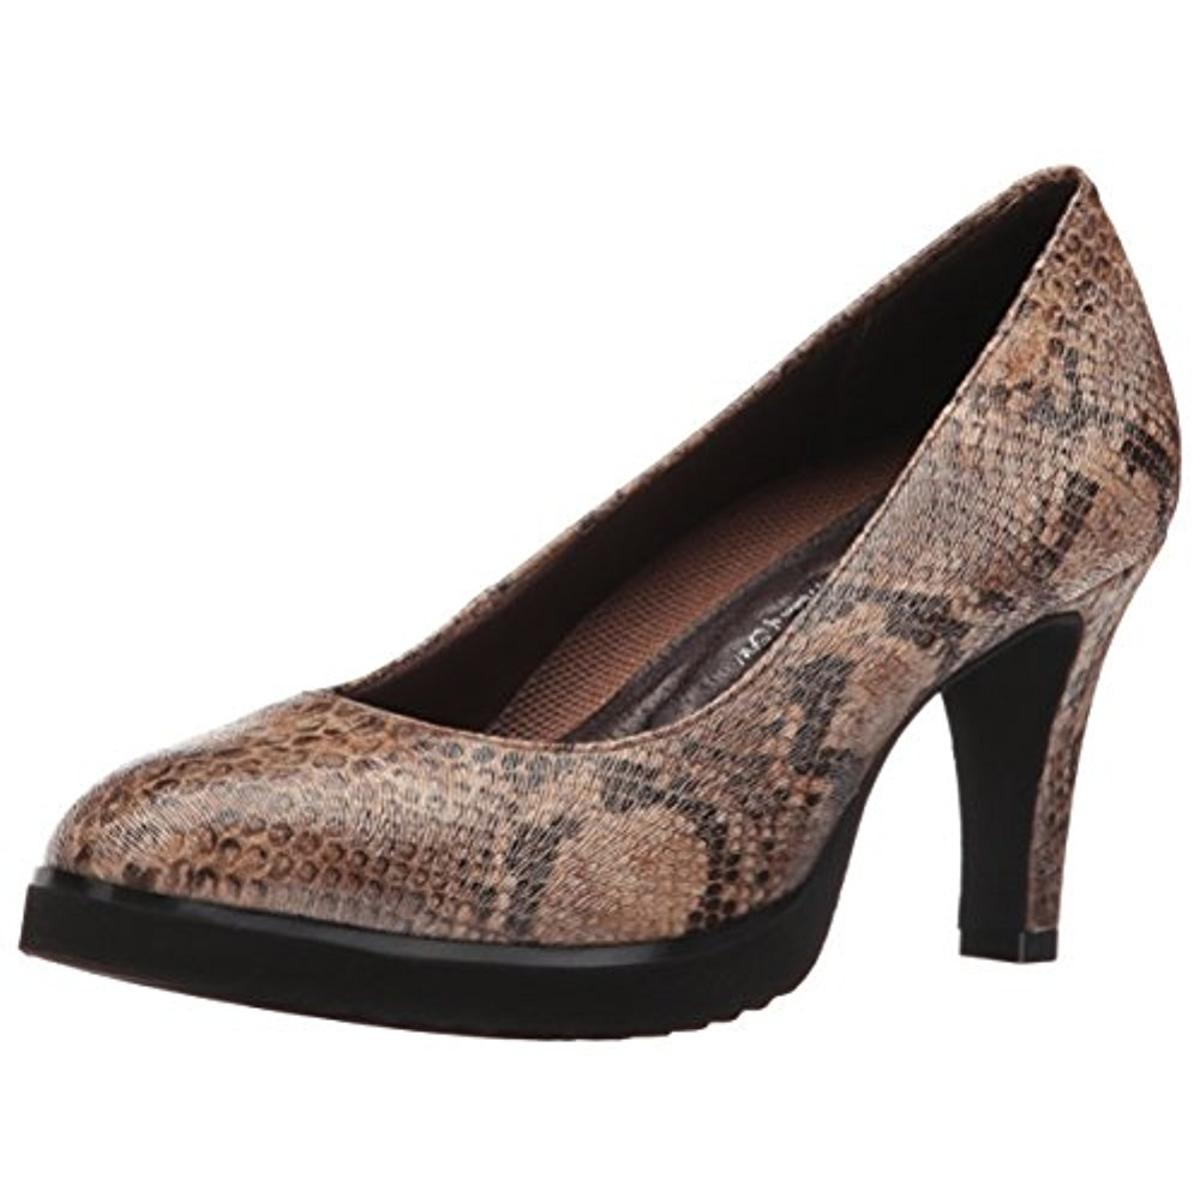 Walking Cradles Tiger Pump(Women's) -Black Snake Print Shop Sale Online Reliable Clearance Choice Supply Online Discount Visit New nvZa76t4Fo